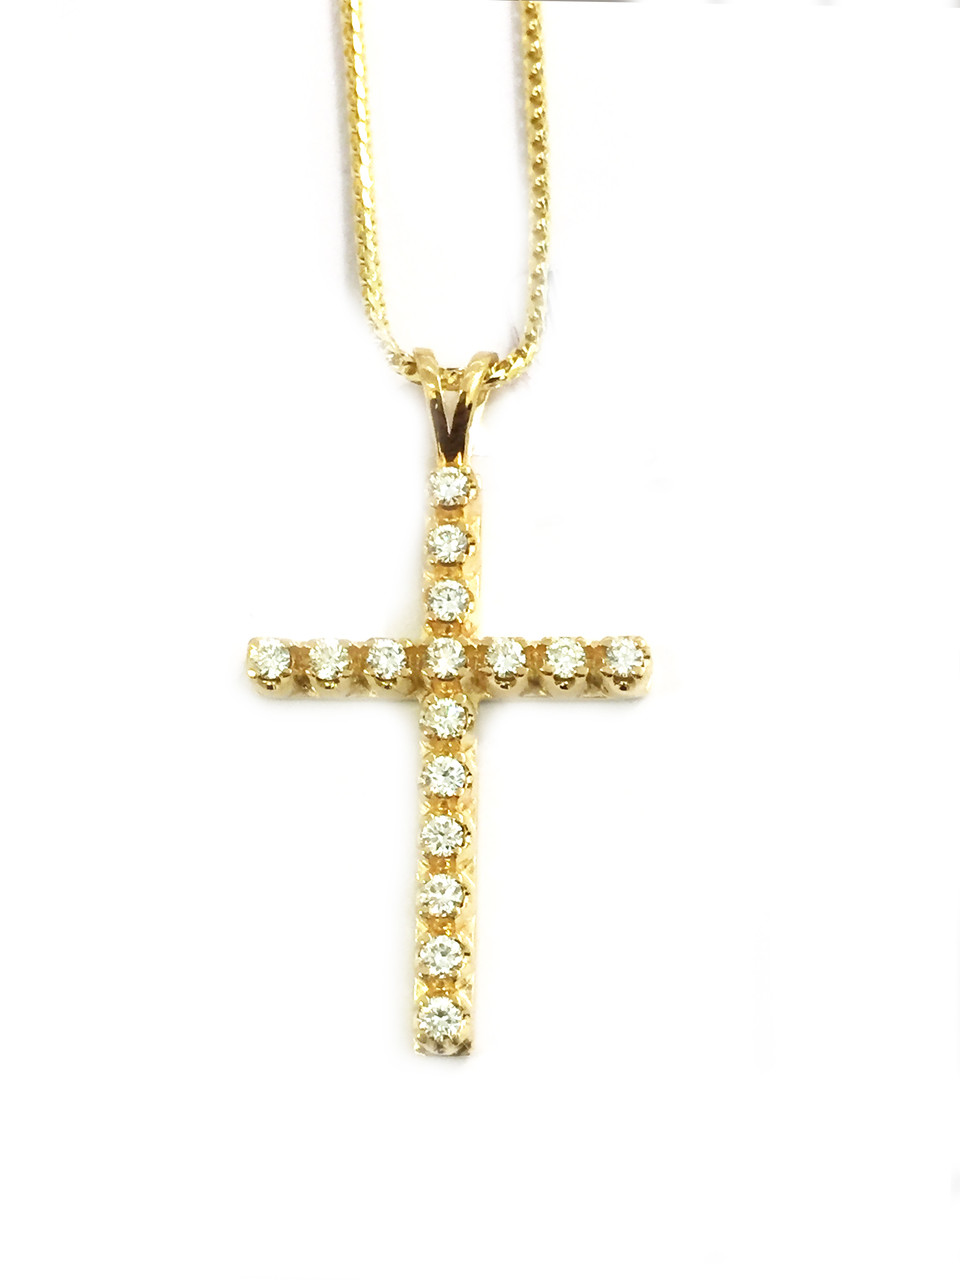 figaro to fingerhut scl uts necklace click over midas hover full va for zoom image gold product chain